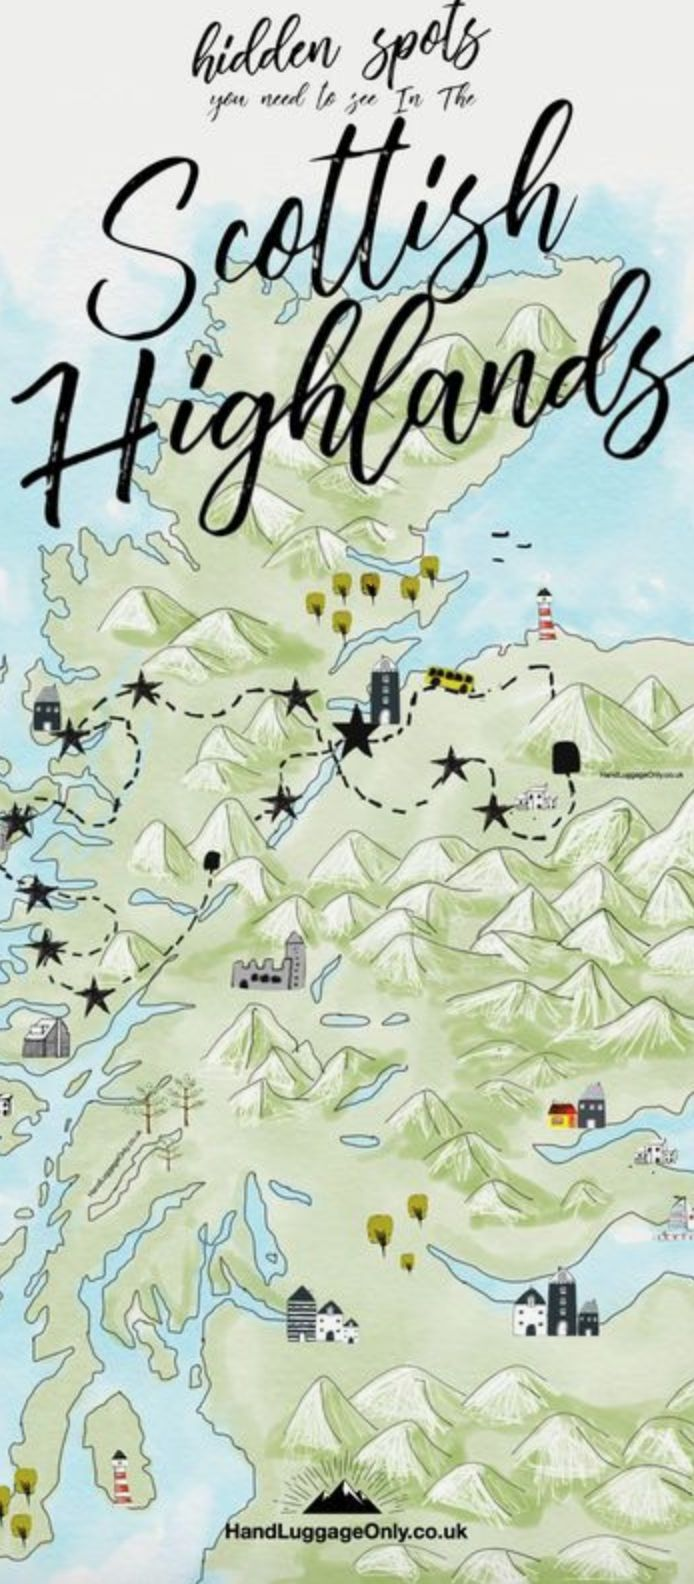 Your Essential Scottish Highlands Trip Itinerary